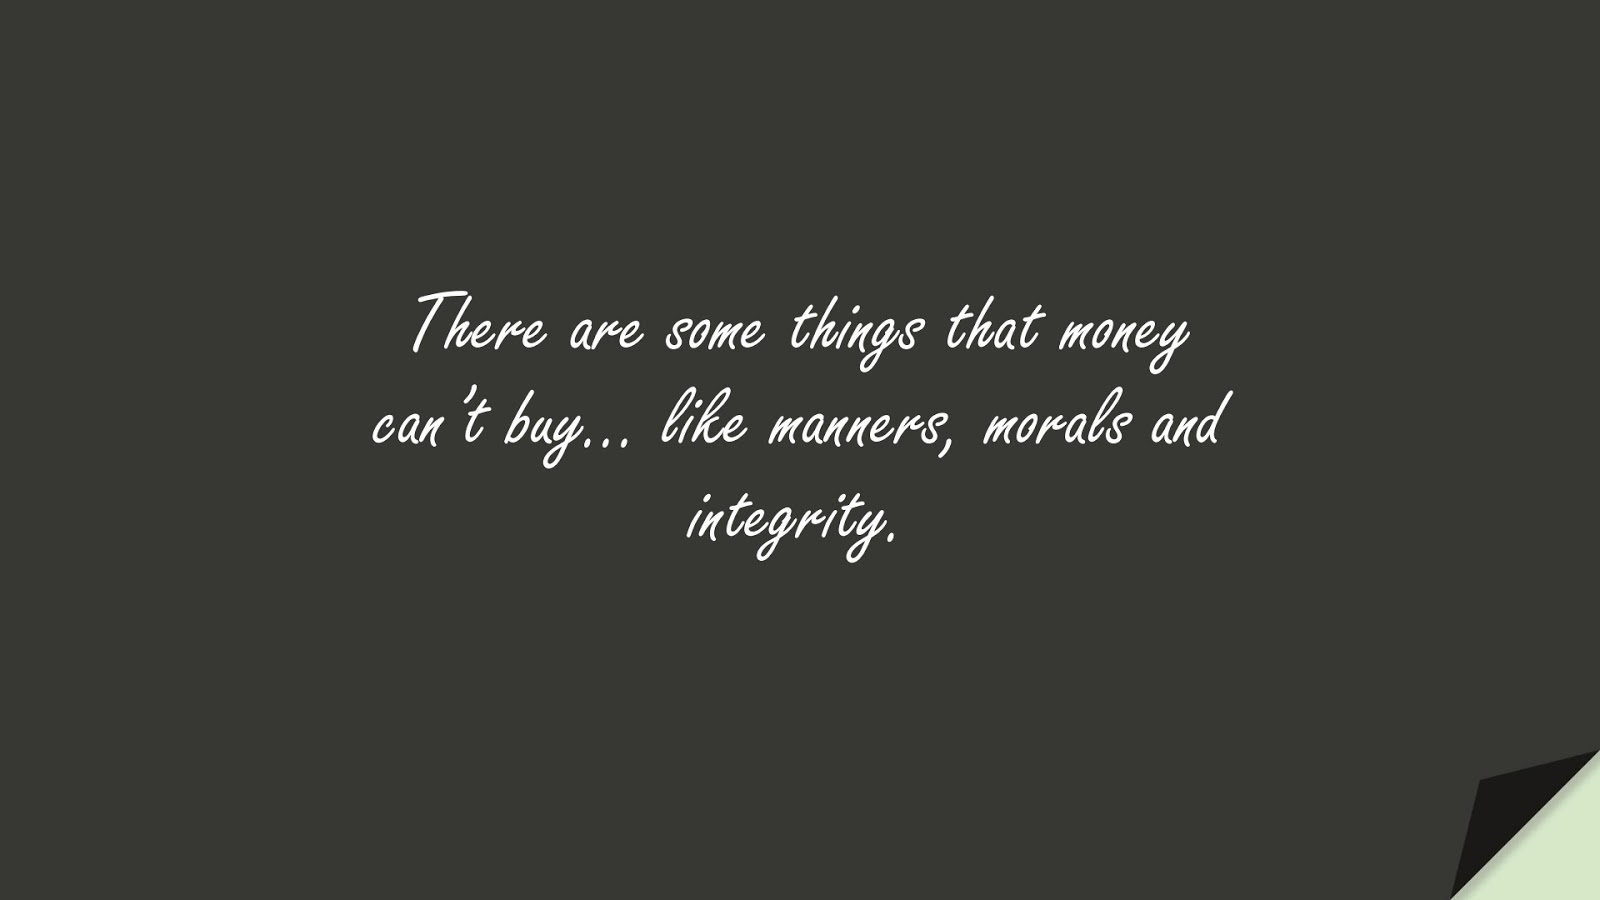 There are some things that money can't buy… like manners, morals and integrity.FALSE